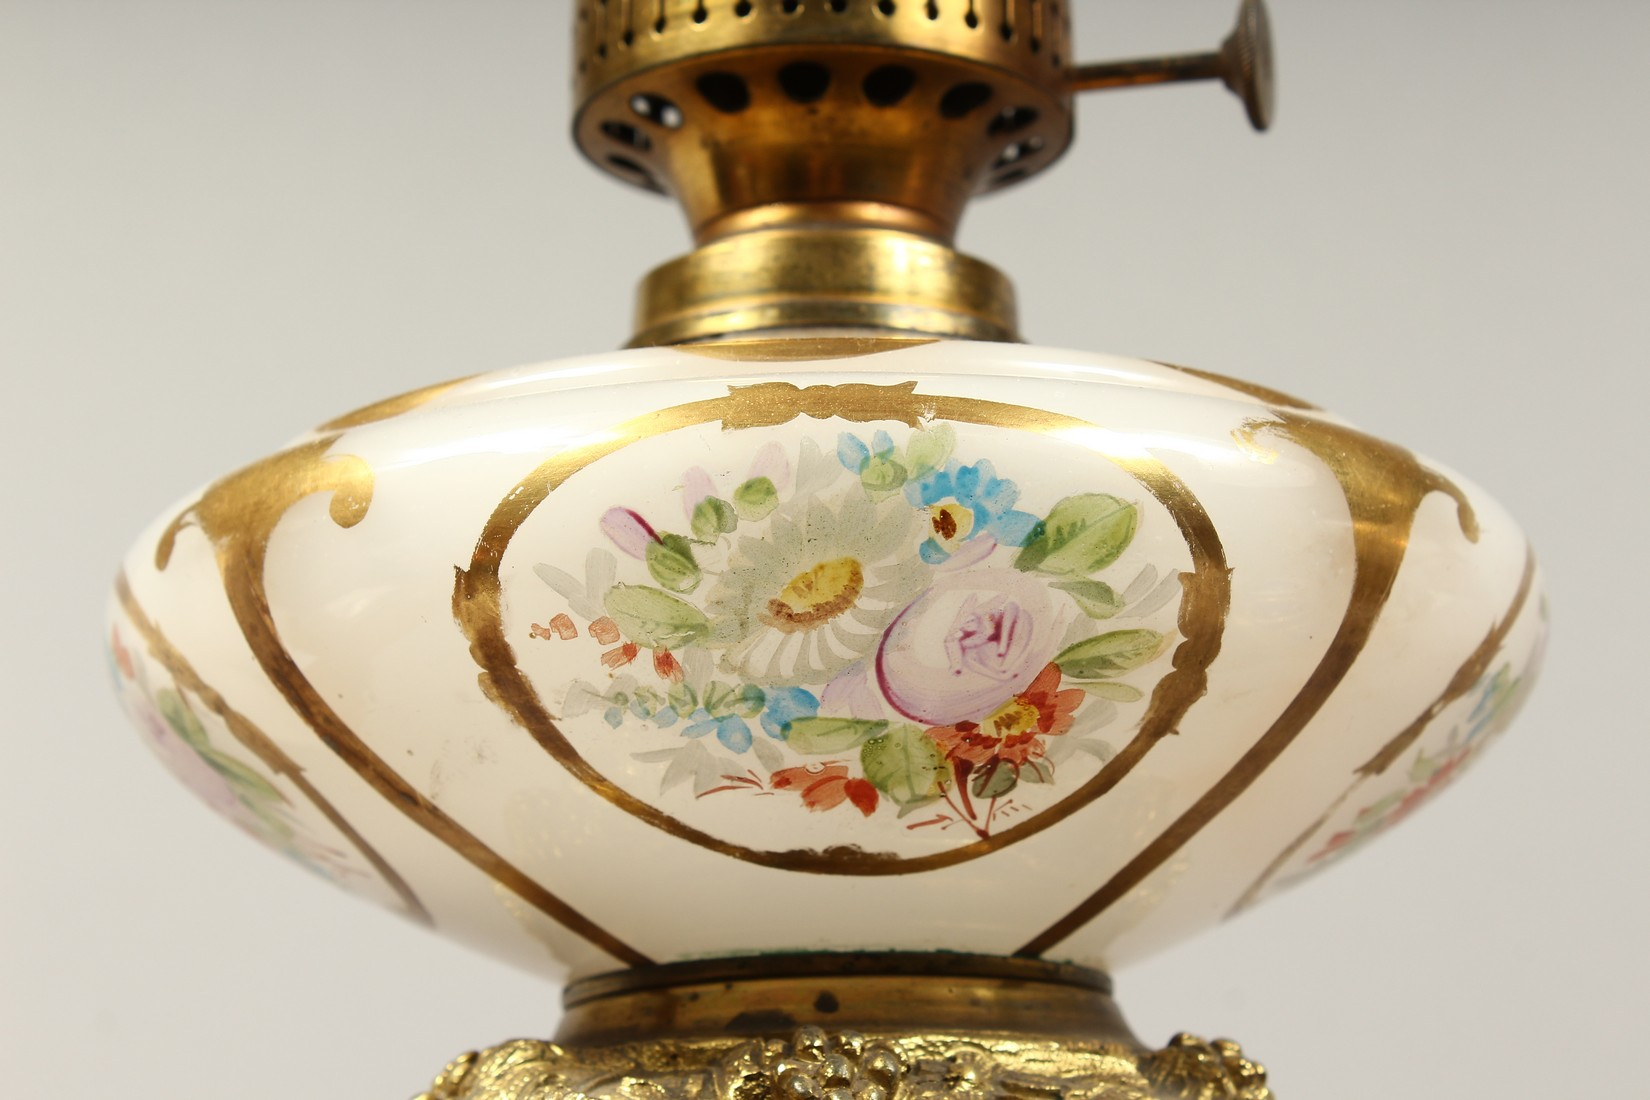 A SUPERB PAIR OF 19TH CENTURY FRENCH PORCELAIN AND GILT BRONZE LAMPS ON STANDS, painted with - Image 4 of 24